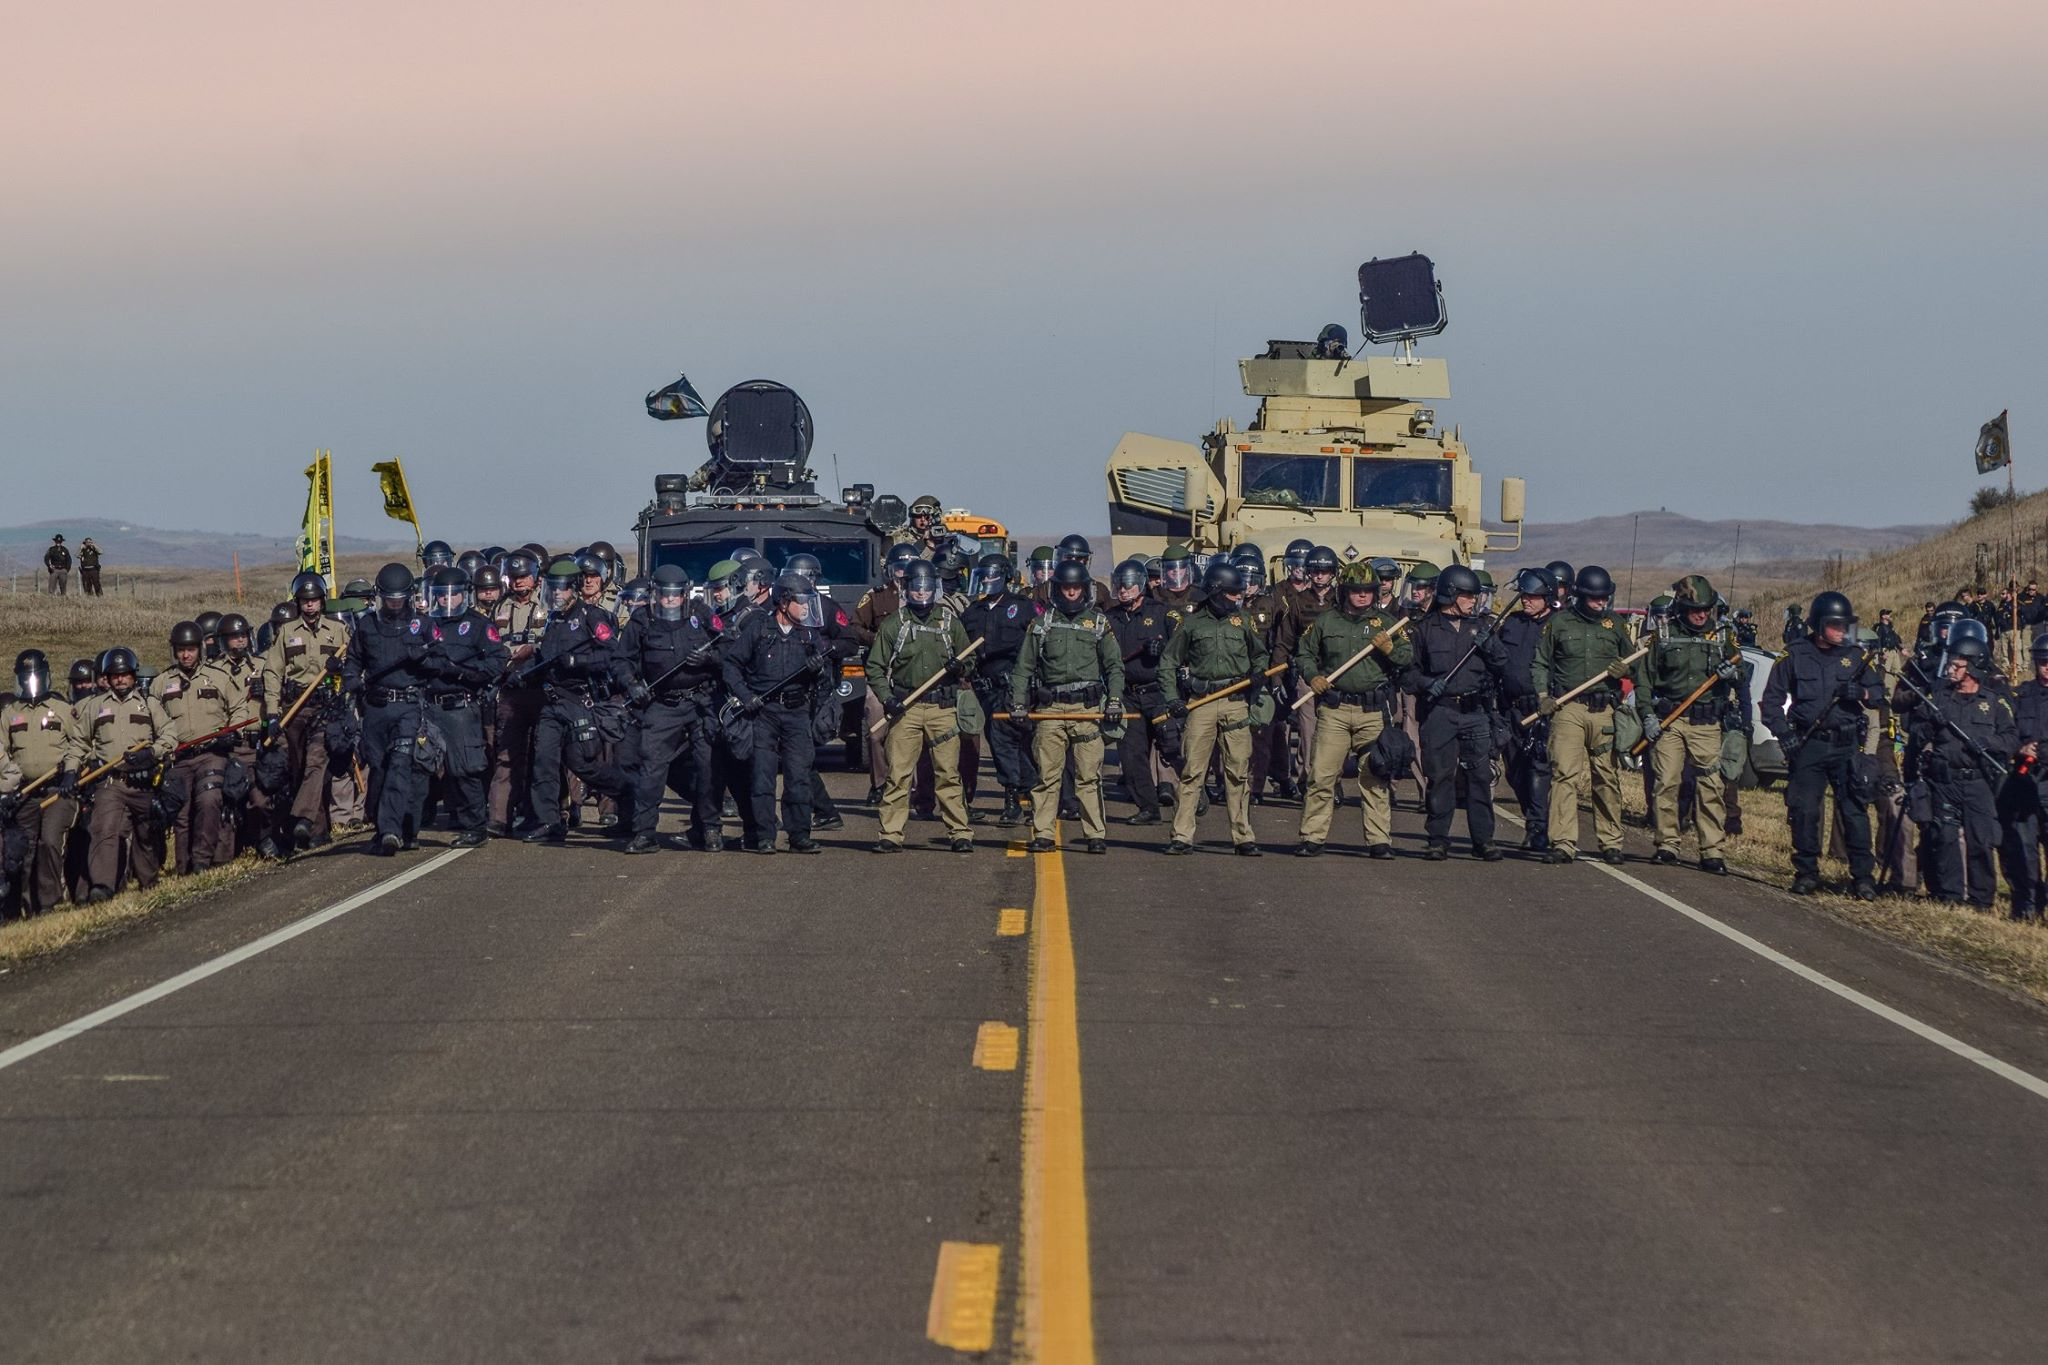 Ivan Star Comes Out: Water protectors treated like terrorists